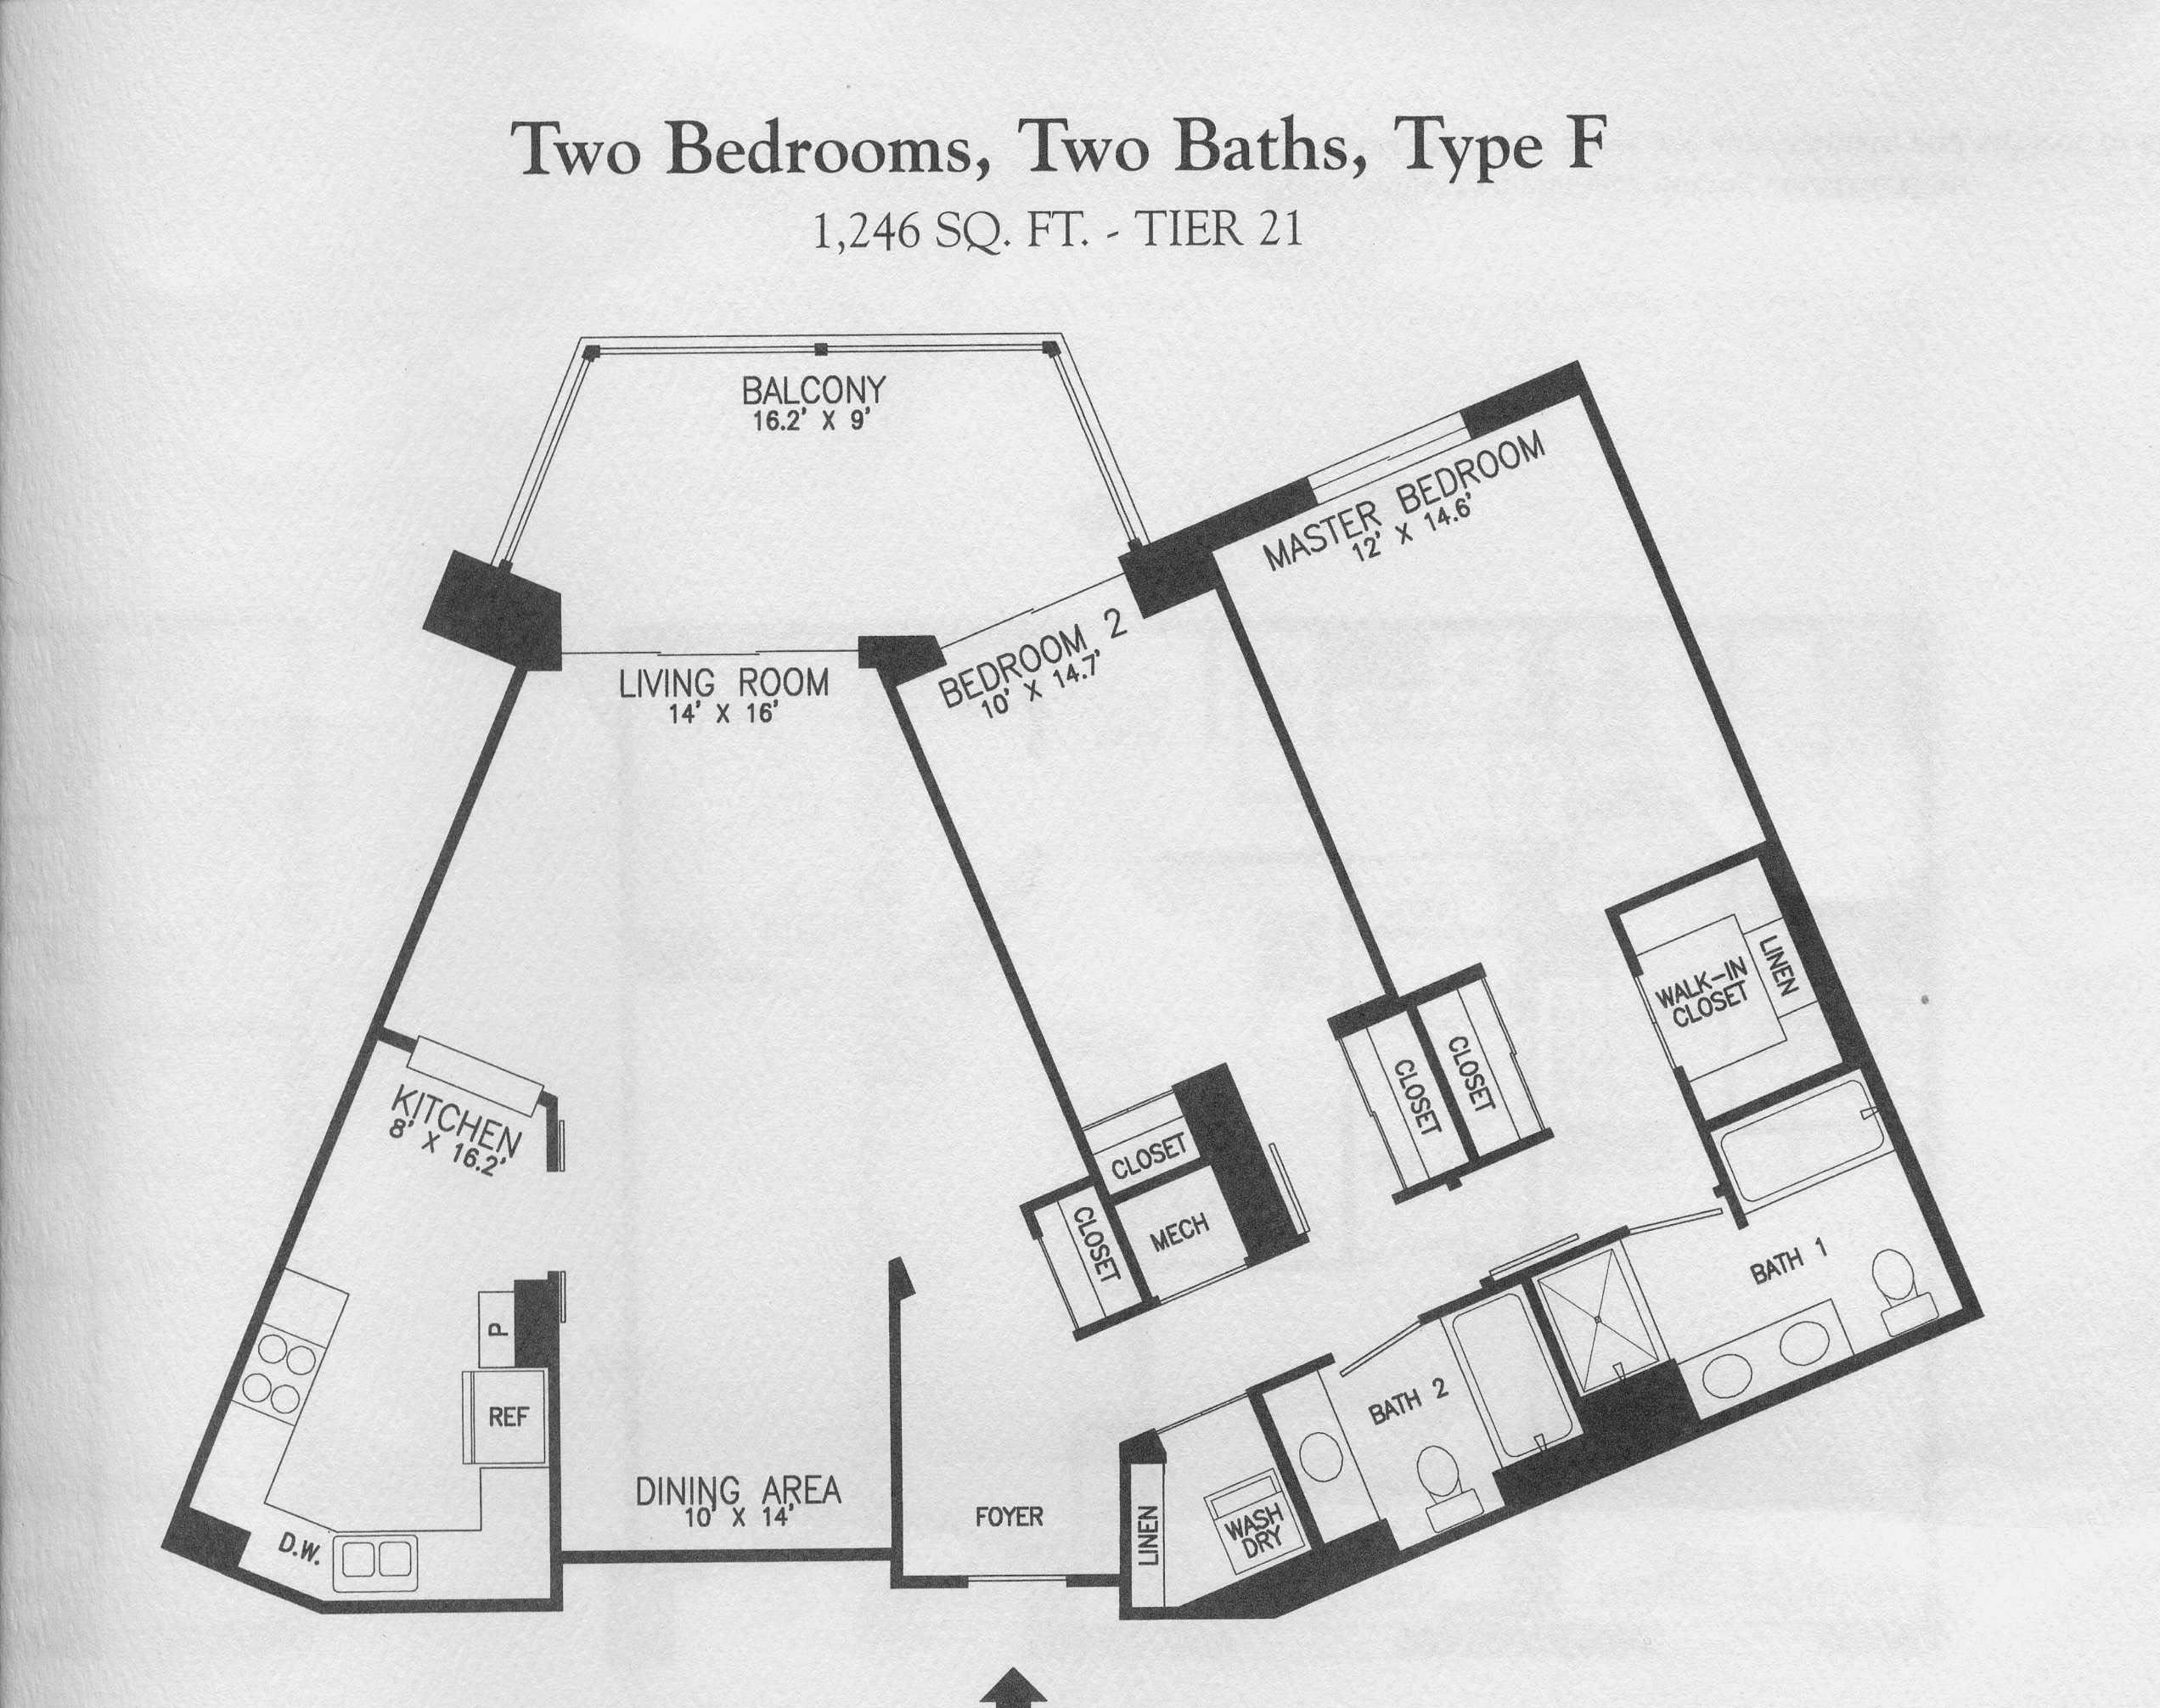 19385 Cypress Ridge Ter #721 - Lansdowne Woods - Floor Plan